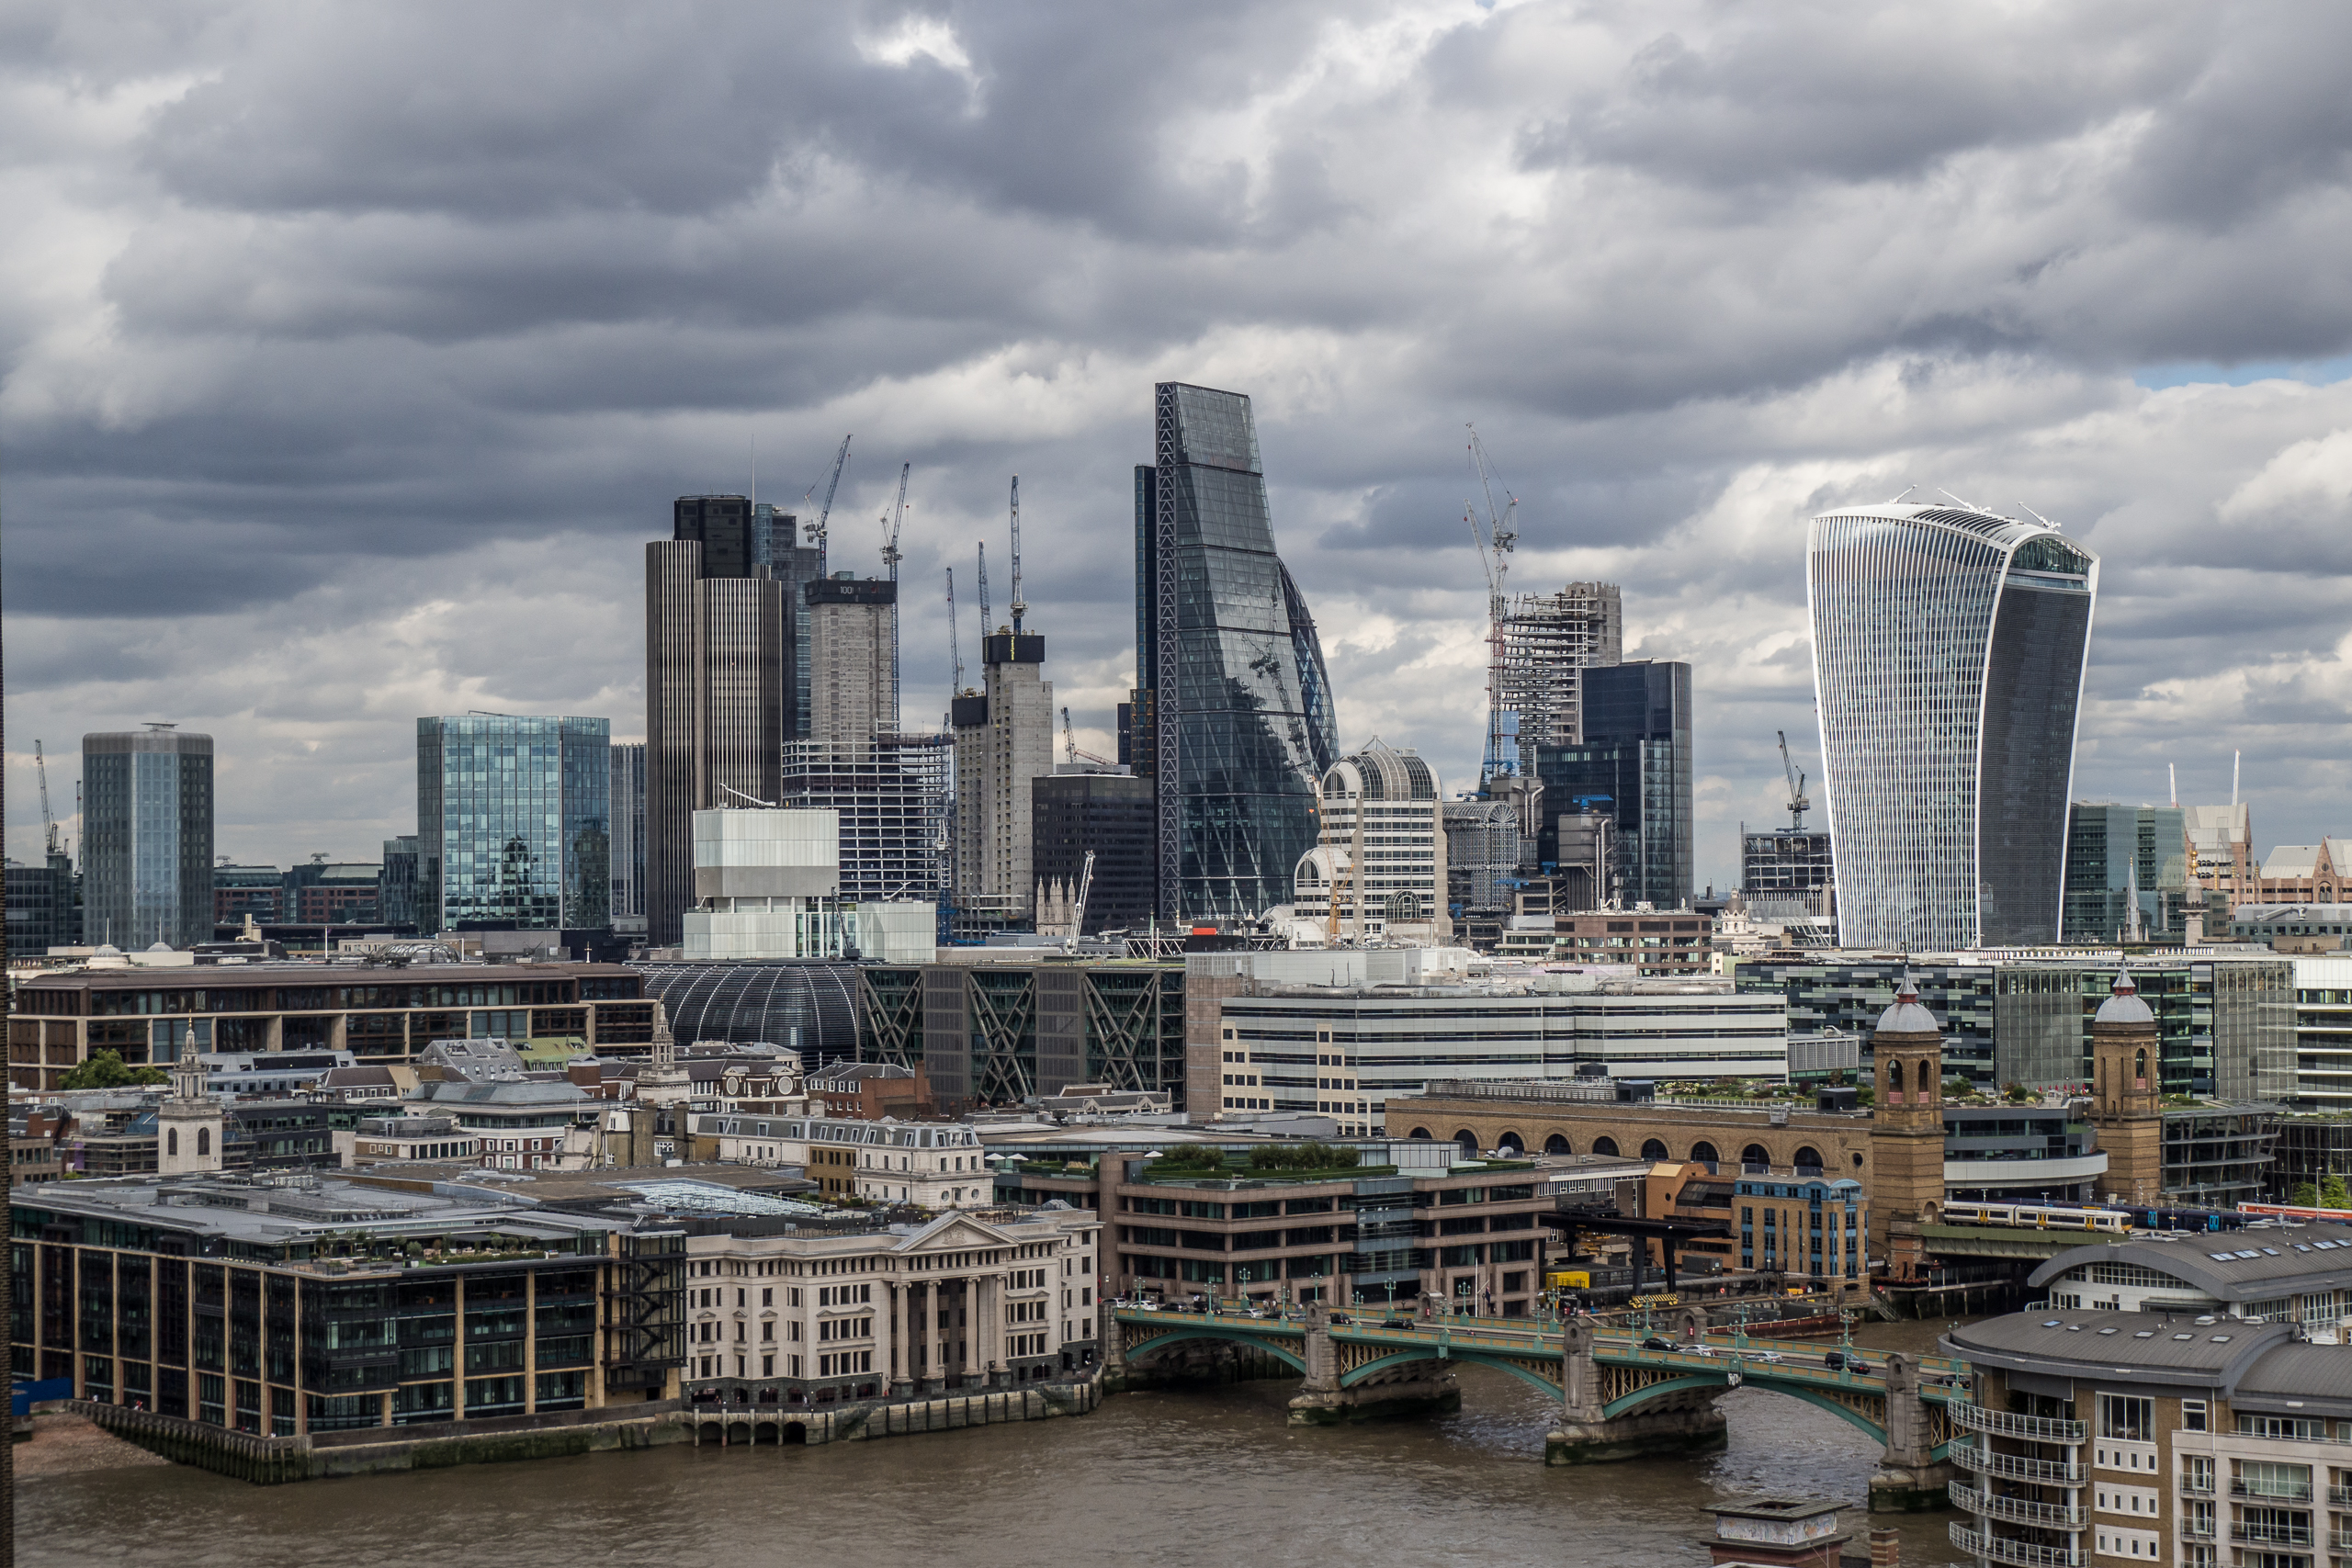 London Skyline by Hanno Rathmann on Flickr